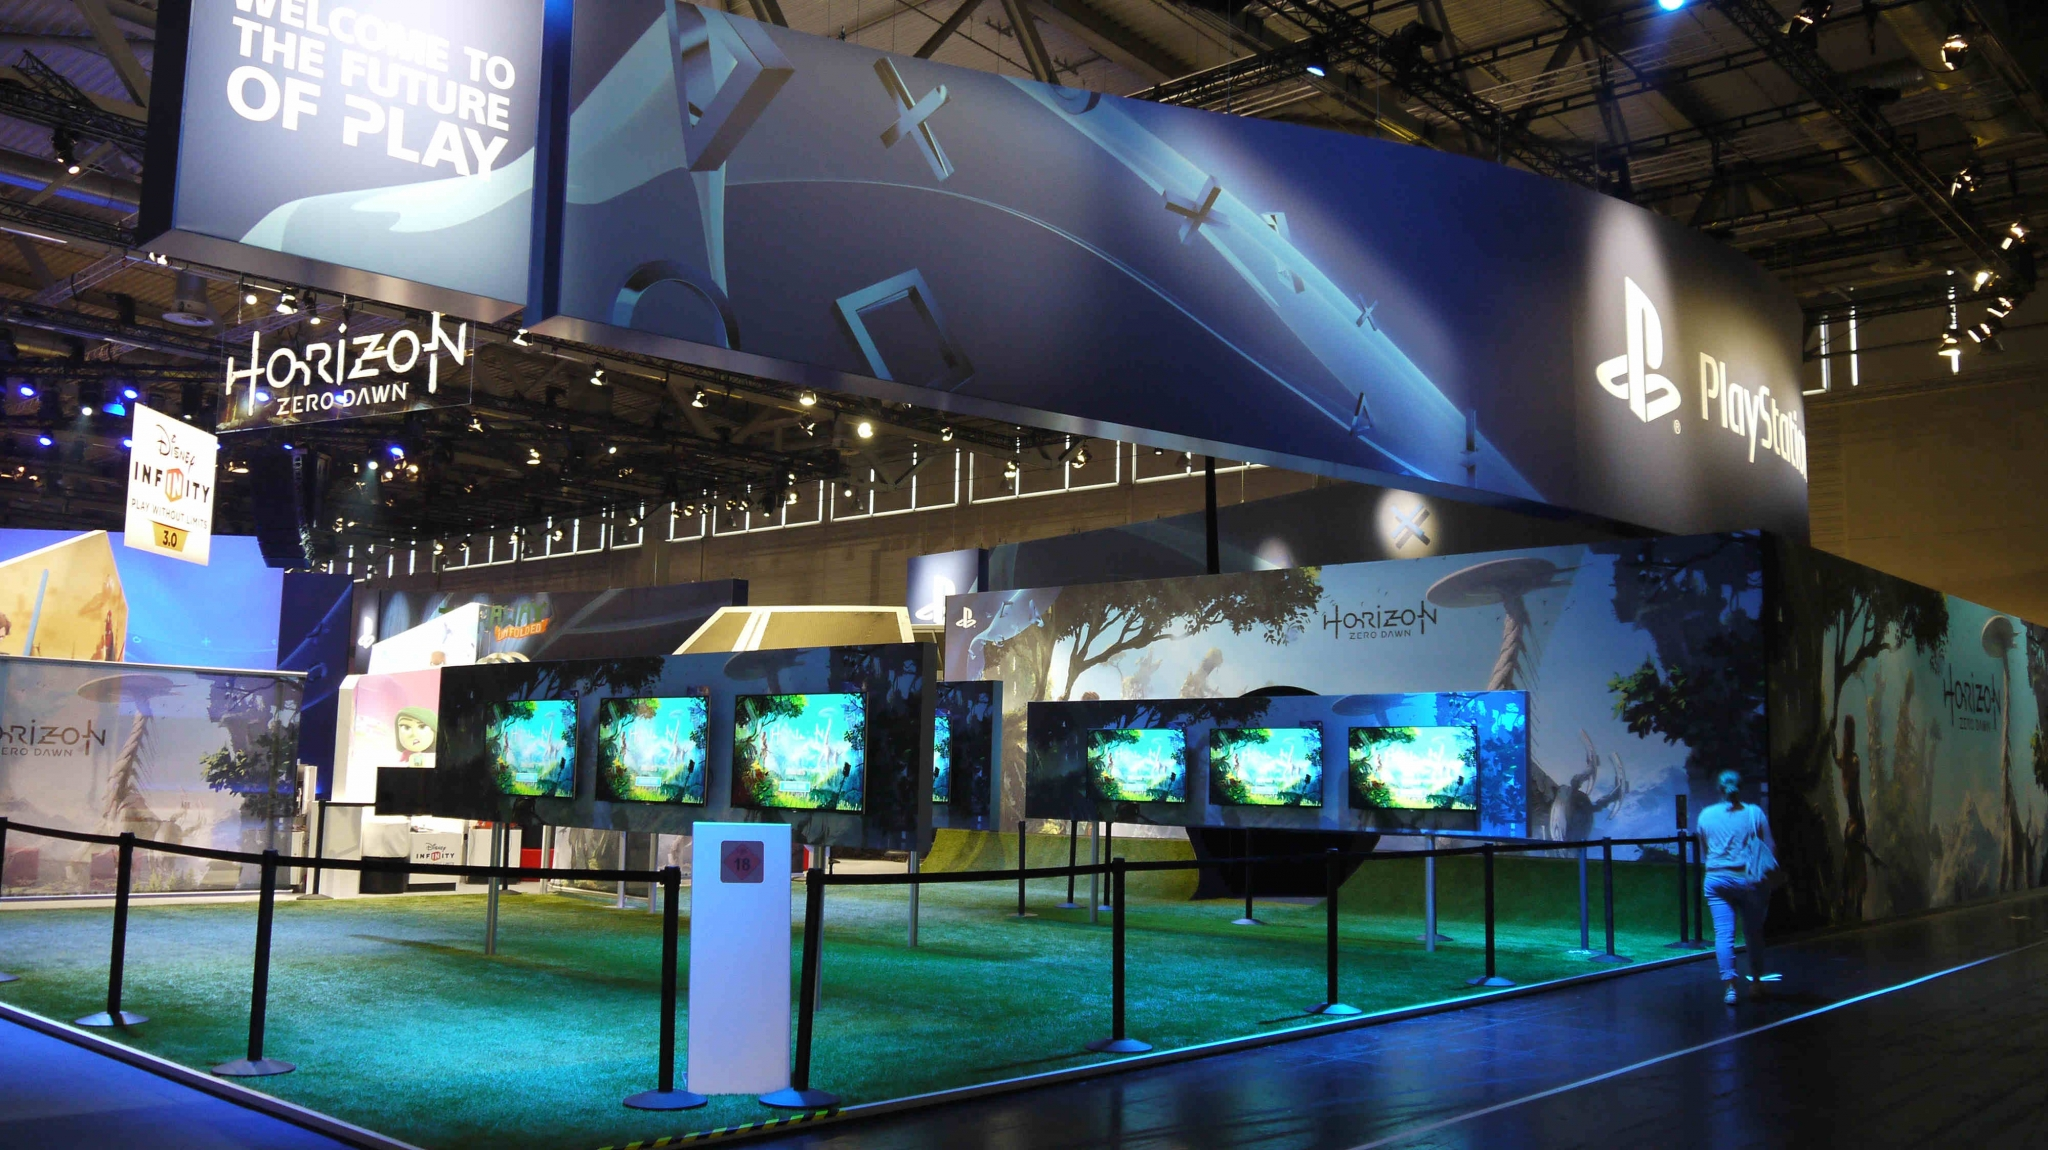 Stand de Sony en la Gamescom 2015 TAGS:undefined